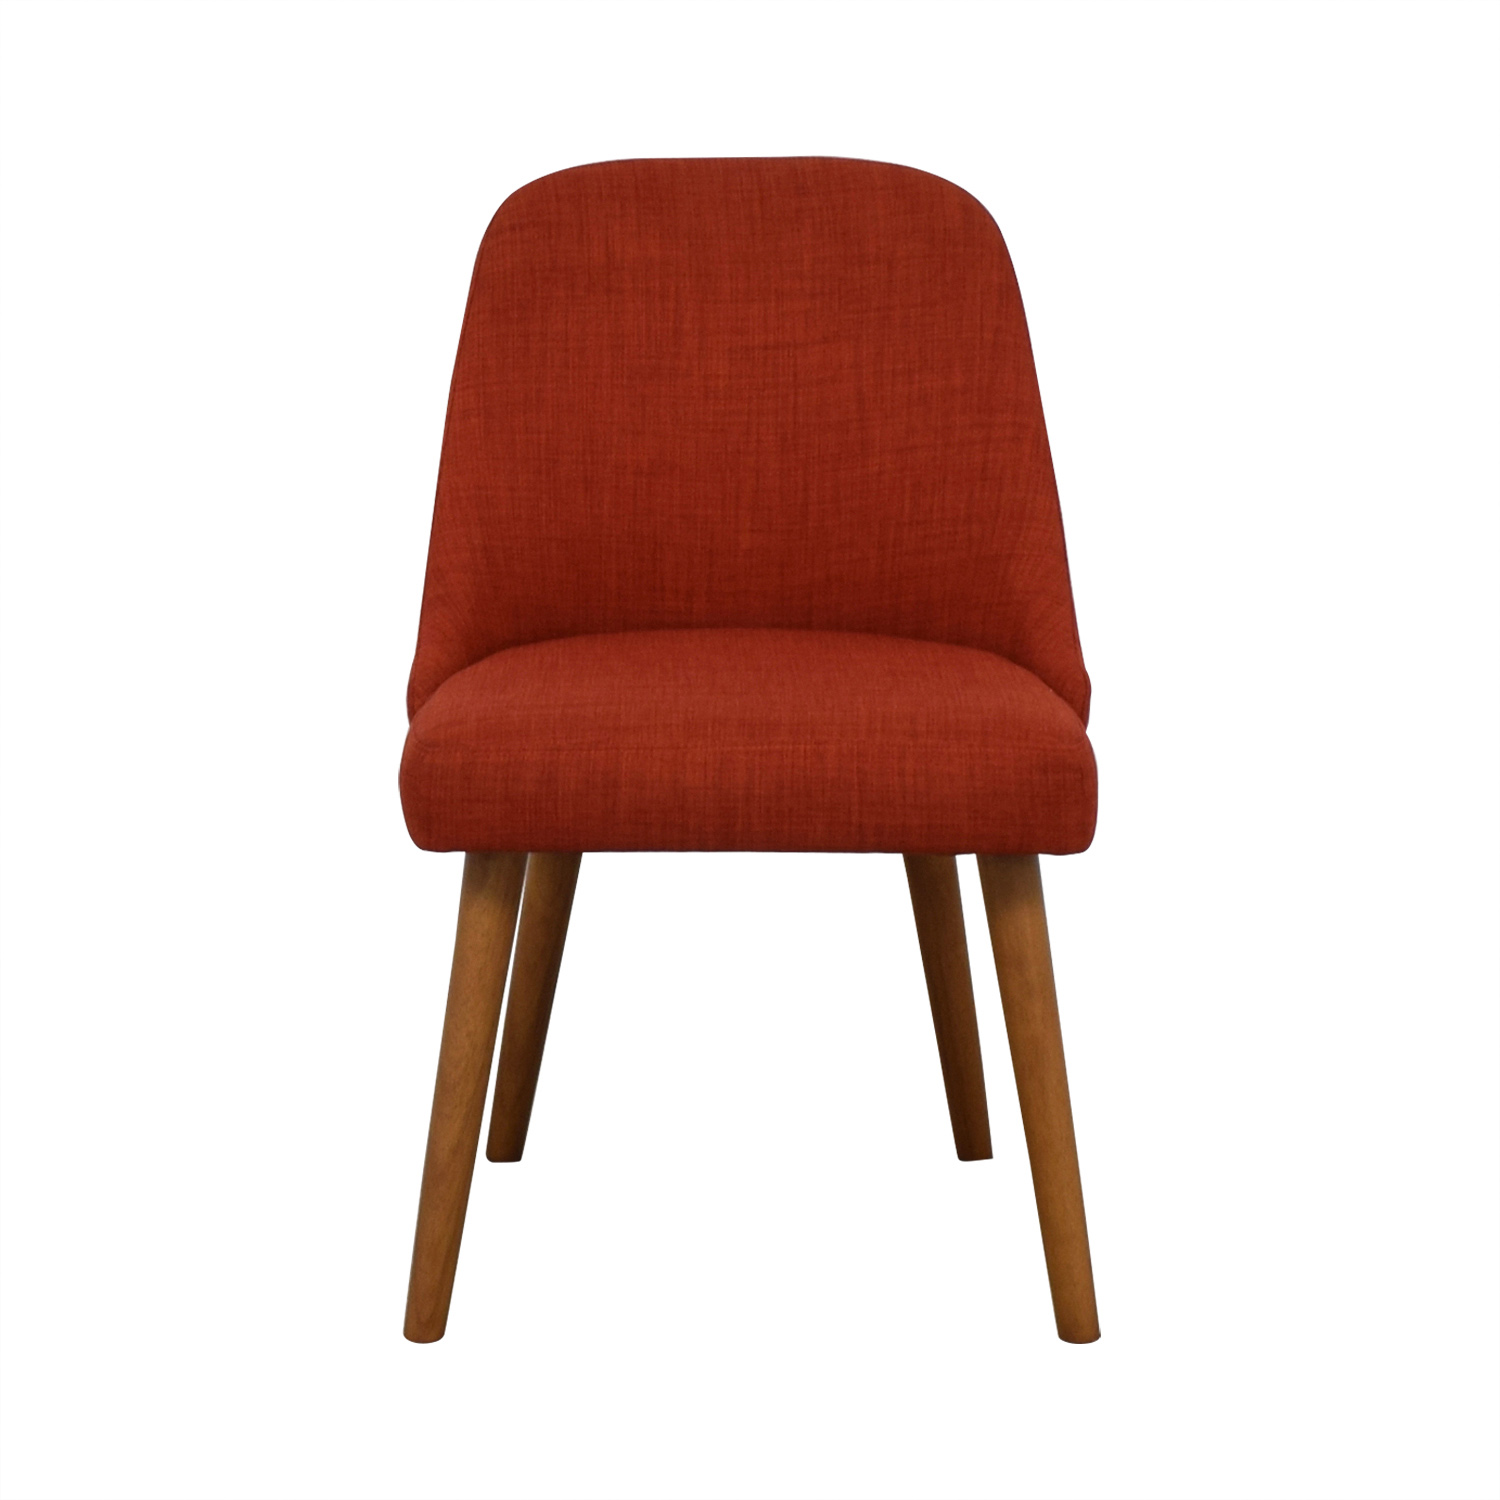 West Elm West Elm Mid-Century Heathered Weave Cayenne Dining Chairs